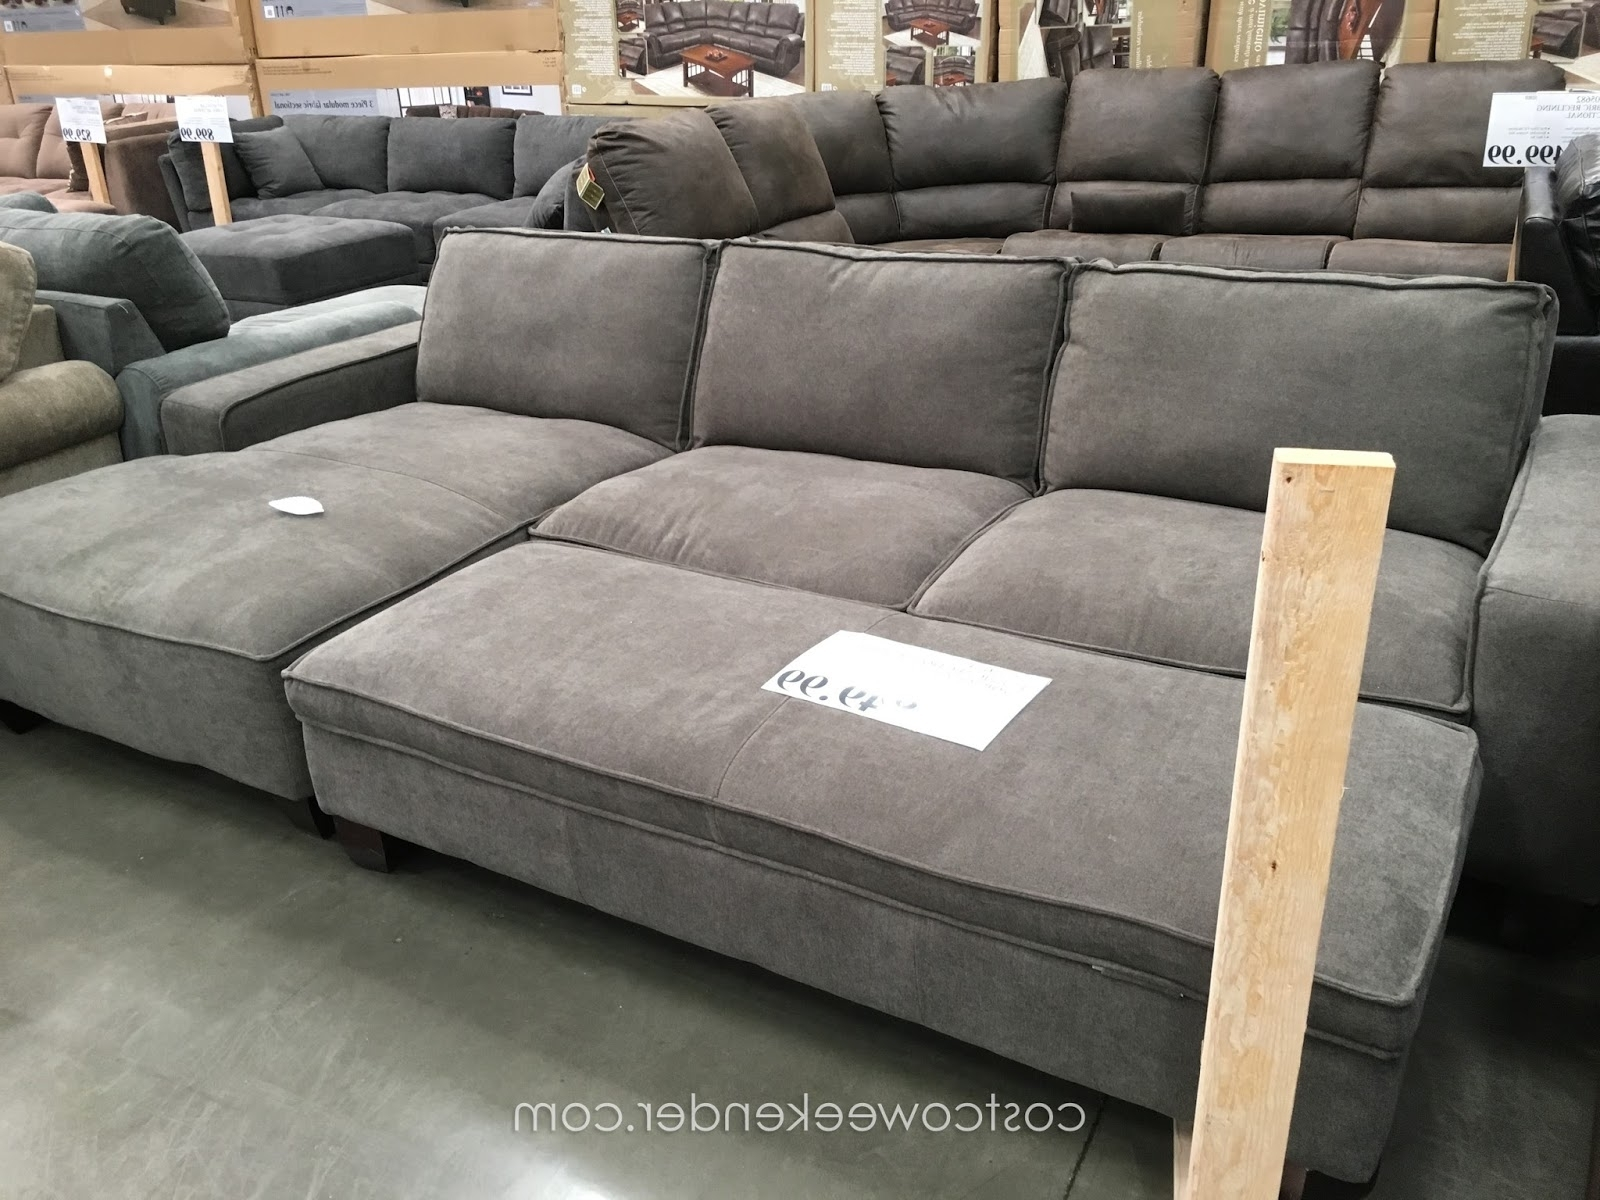 Favorite Extra Large Sofas For Furniture: Nice Extra Large Sectional Sofa For Large Living Room (View 15 of 20)